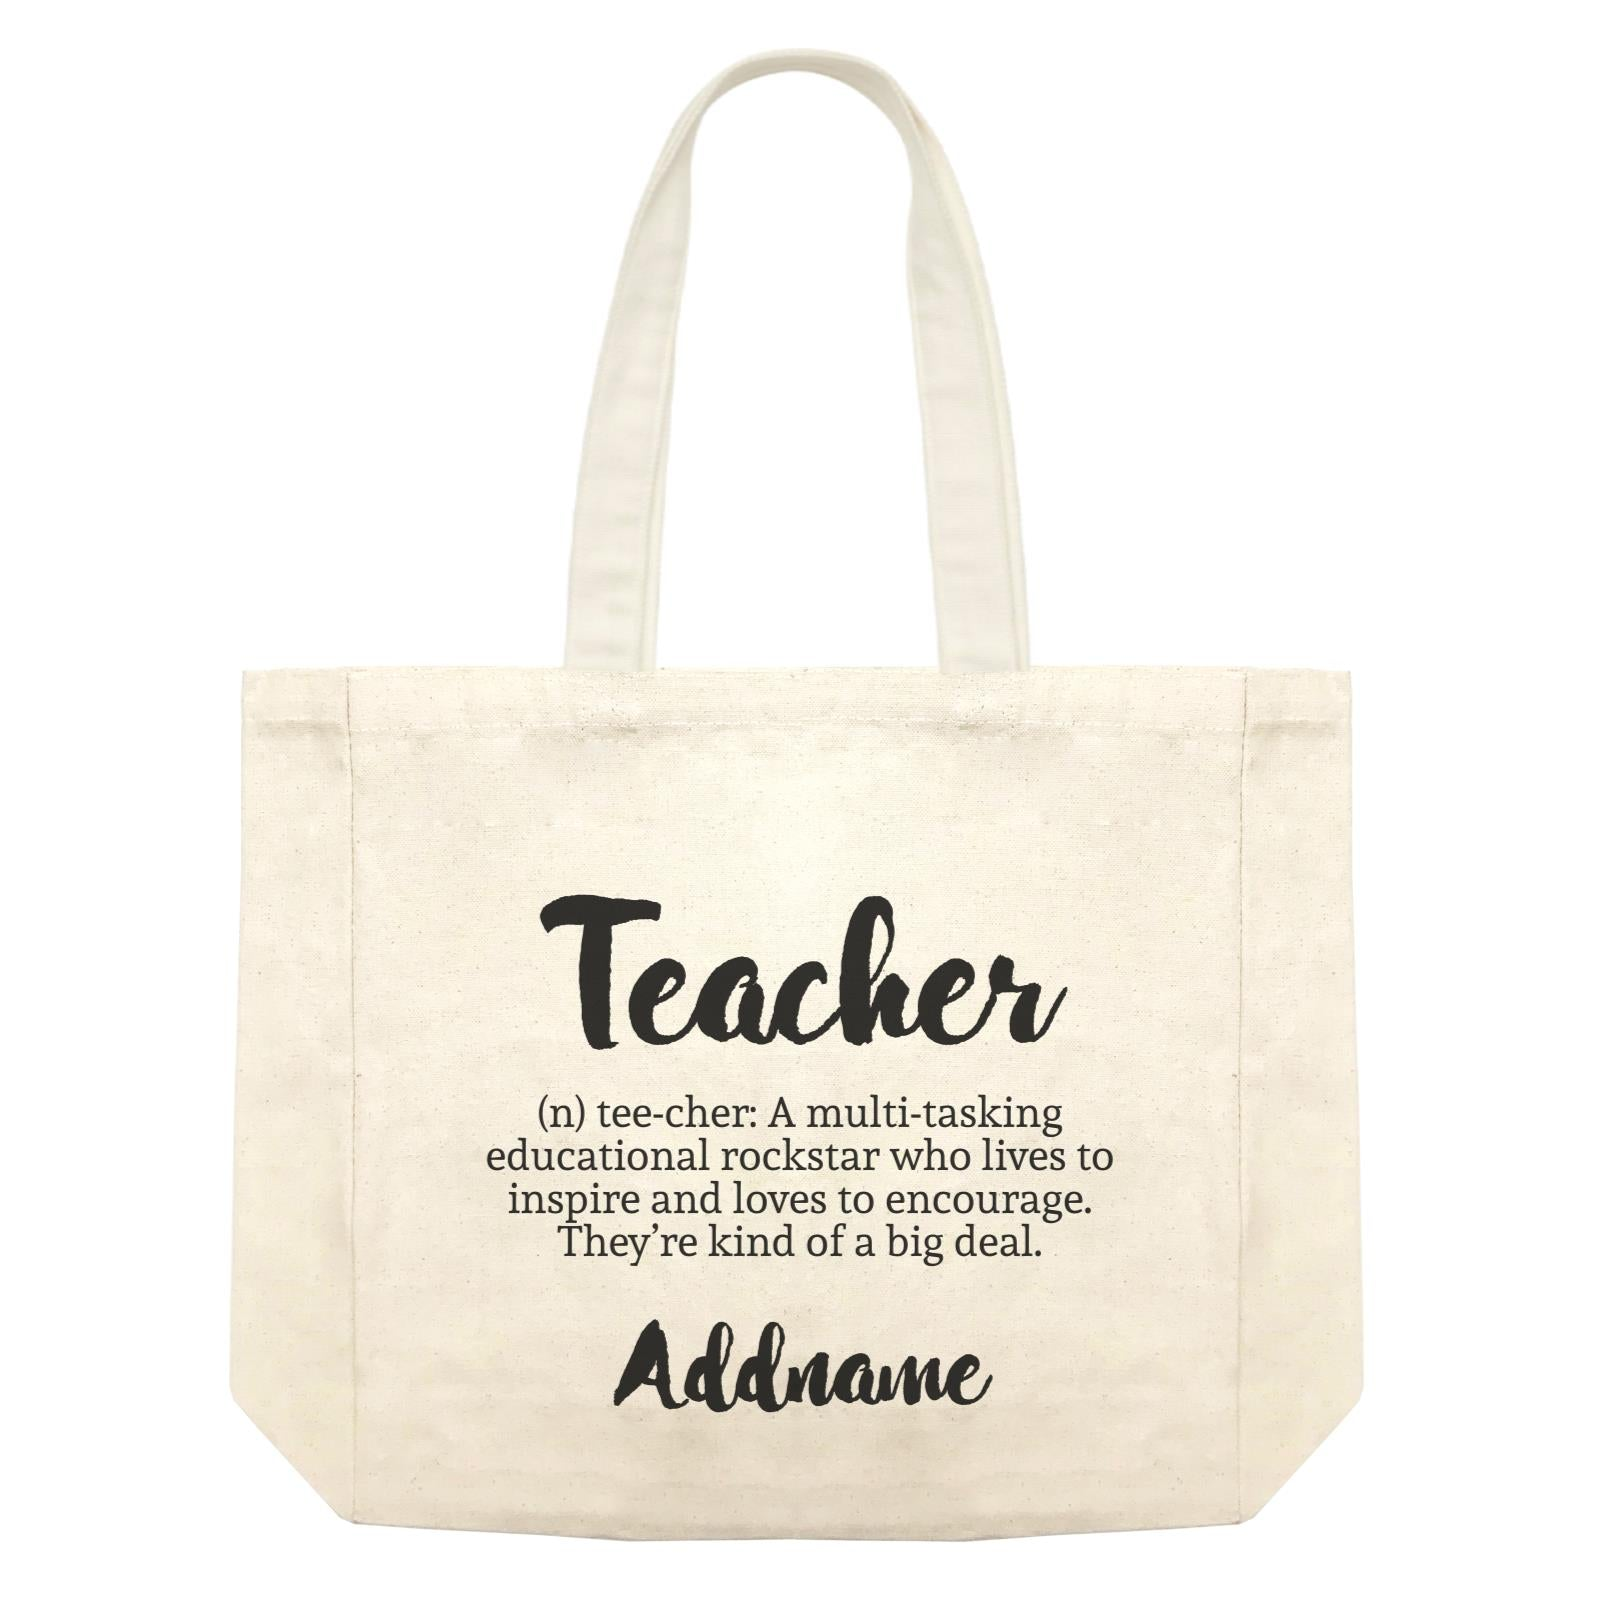 Teacher Quotes 2 Teacher Noun Addname Shopping Bag